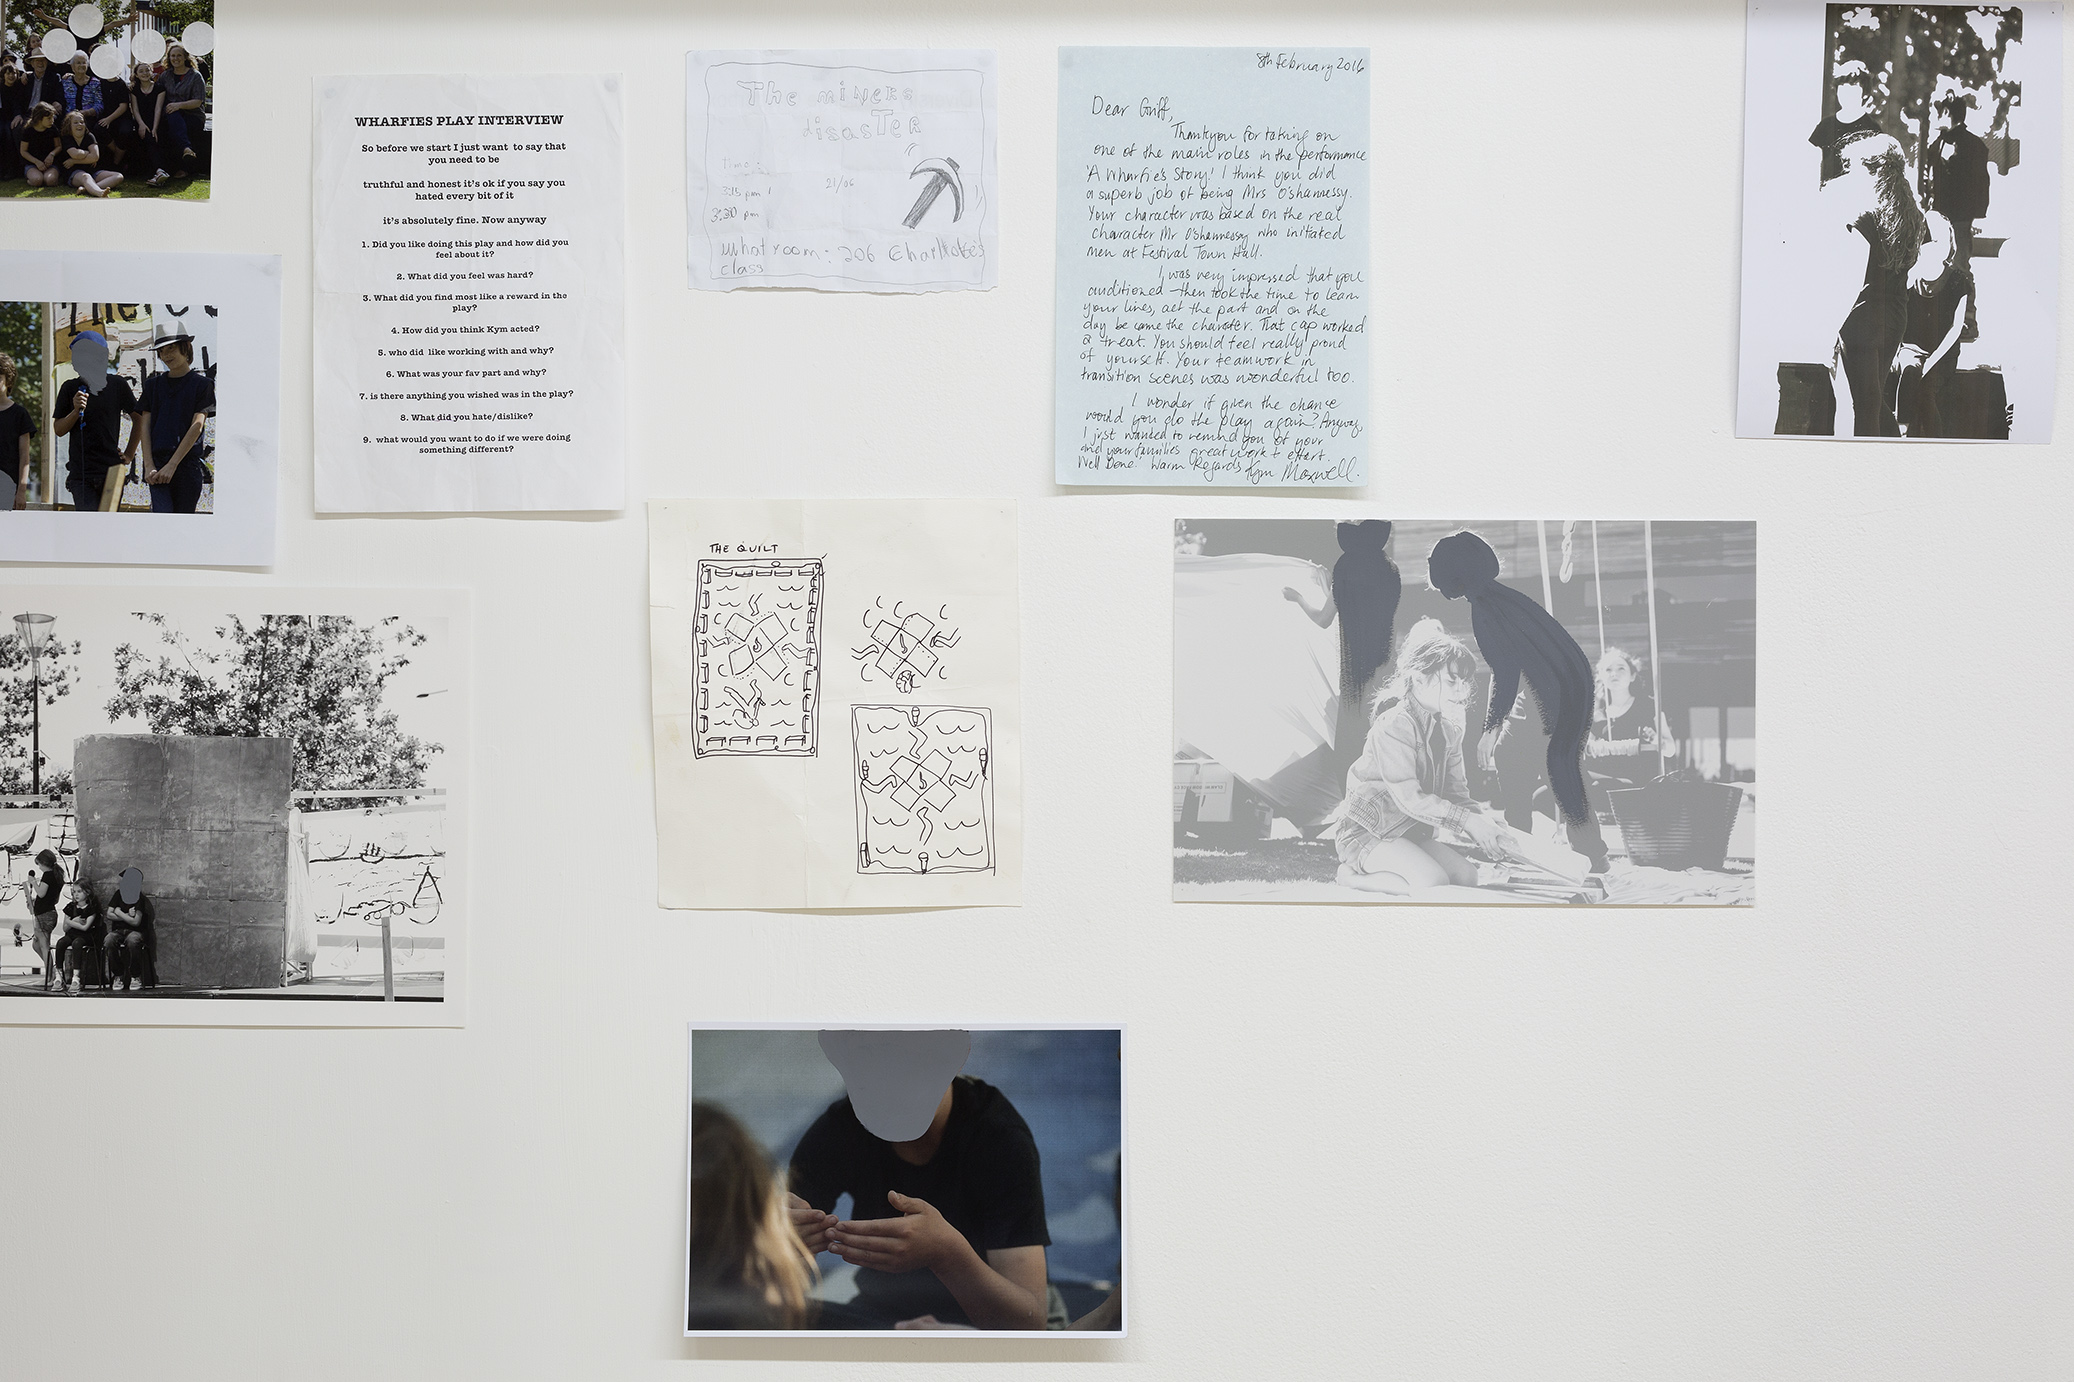 storyboard iteration 2017 , teaching and leaning ephemera from a 2015 performance arts curriculum, seven pine stud arches and frames, white corduroy, nails, screws, two wooden stools, archival images gifted from Jim and Tui Beggs, multiple imagery reproduced from photographs by Keelan O'Hehir, Christian Capurro and Kym Maxwell relate to the theatre production A Wharfie's Story performed by The Collingwood College Theatre Troupe (2015), as well aswatercolour drawings and lithograph prints, notebook digital reproductions, charcoal comments, bluetak, gold split pins, sticky tape All altered documentation, drawings, paintings, prints and sculptures by Kym Maxwell (2016-2017). Dimensions variable, ongoing installation instructions the fabric corduroy wall must be 730 mm distance from the gallery wall, partly concealed with its height one third lower than the gallery wall. Image: Christian Capurro